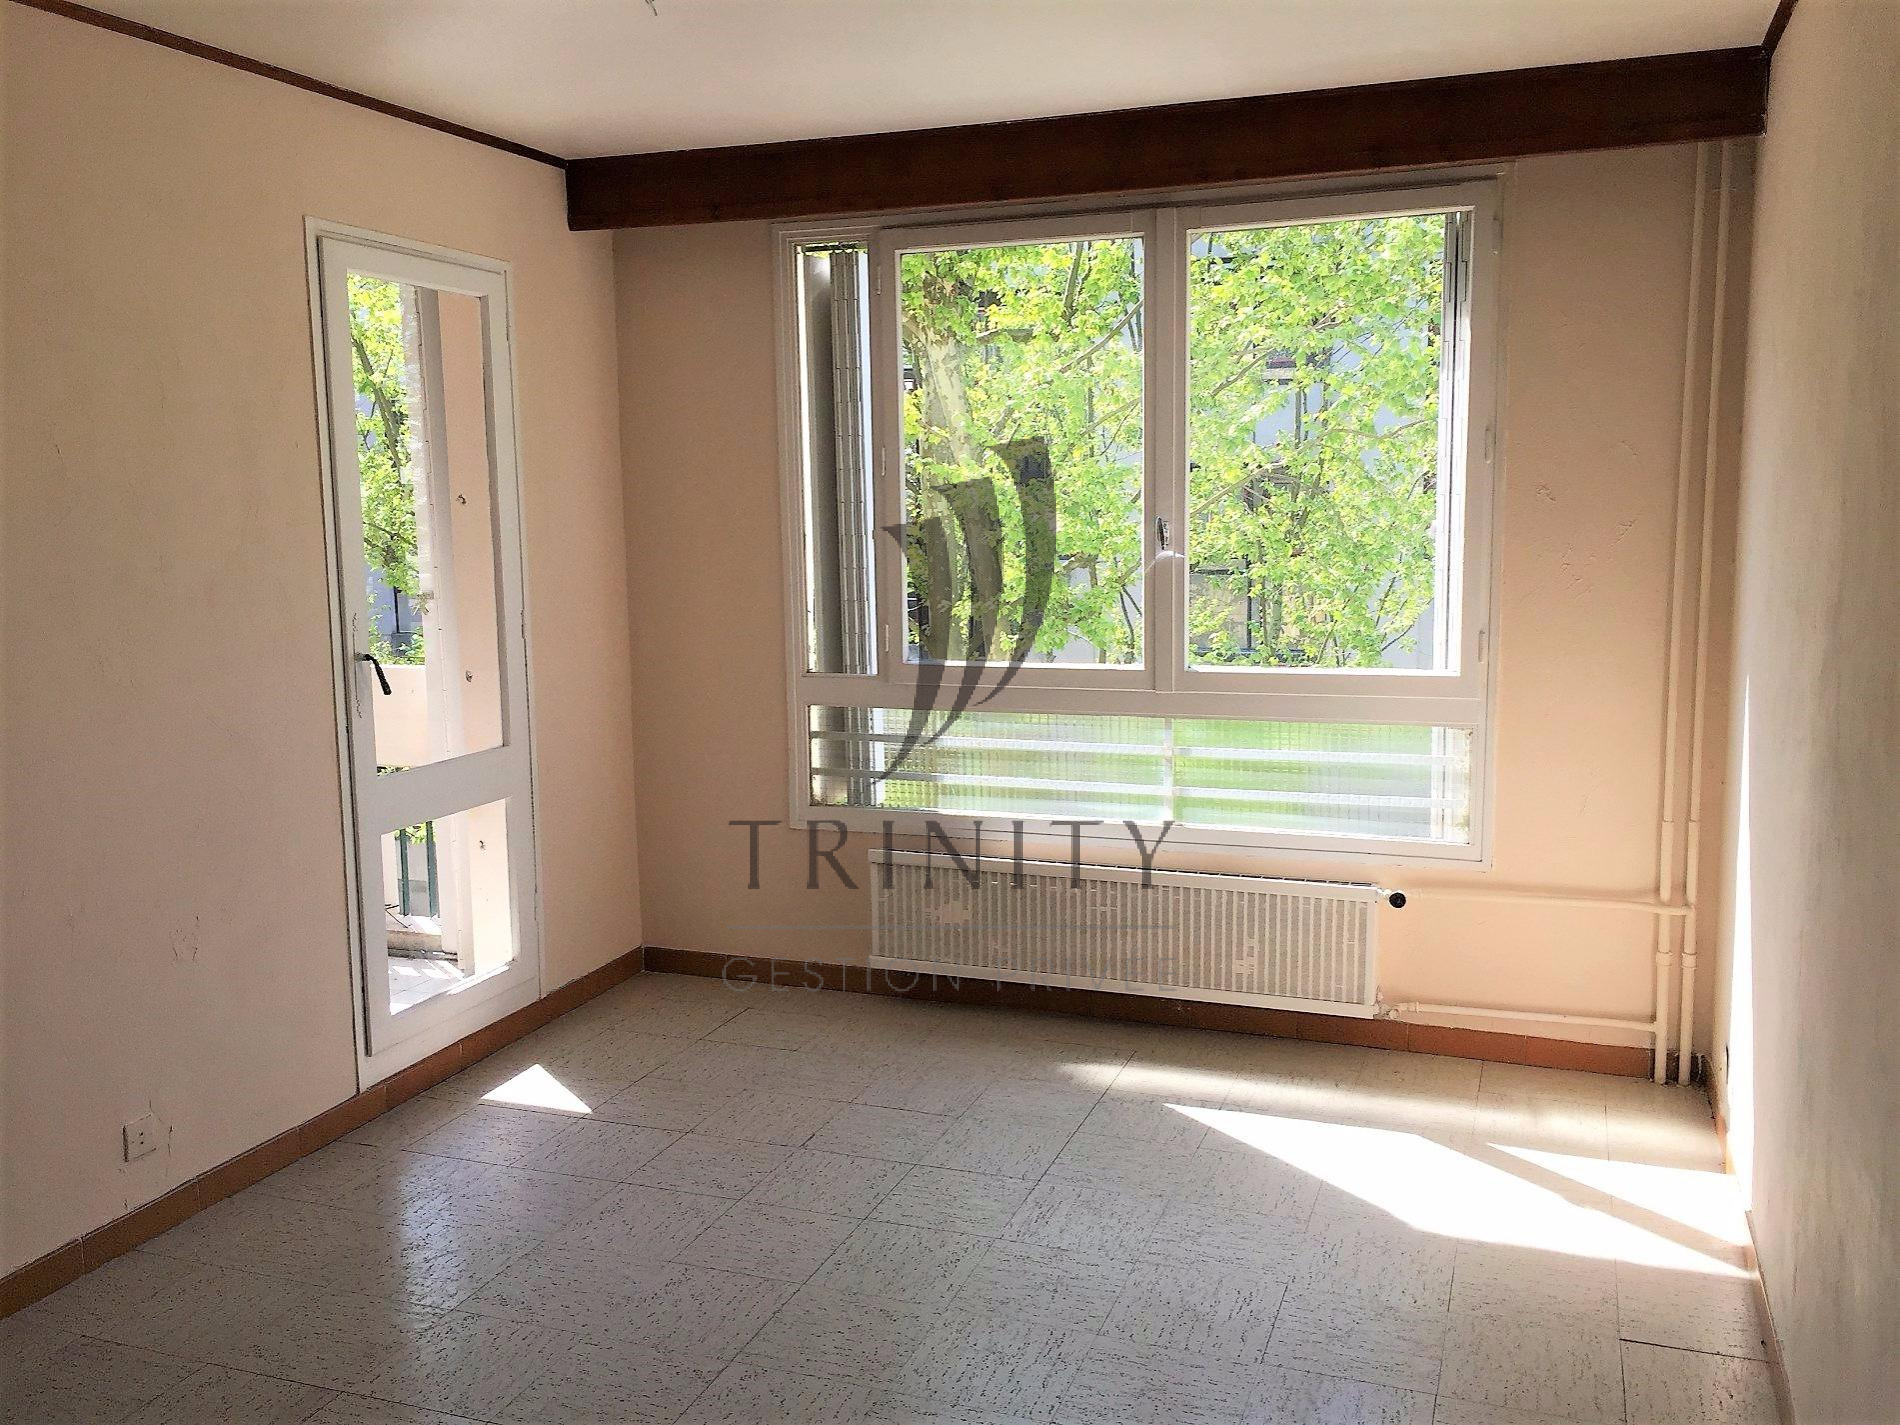 Vente appartement f3 valence for Garage ad valence